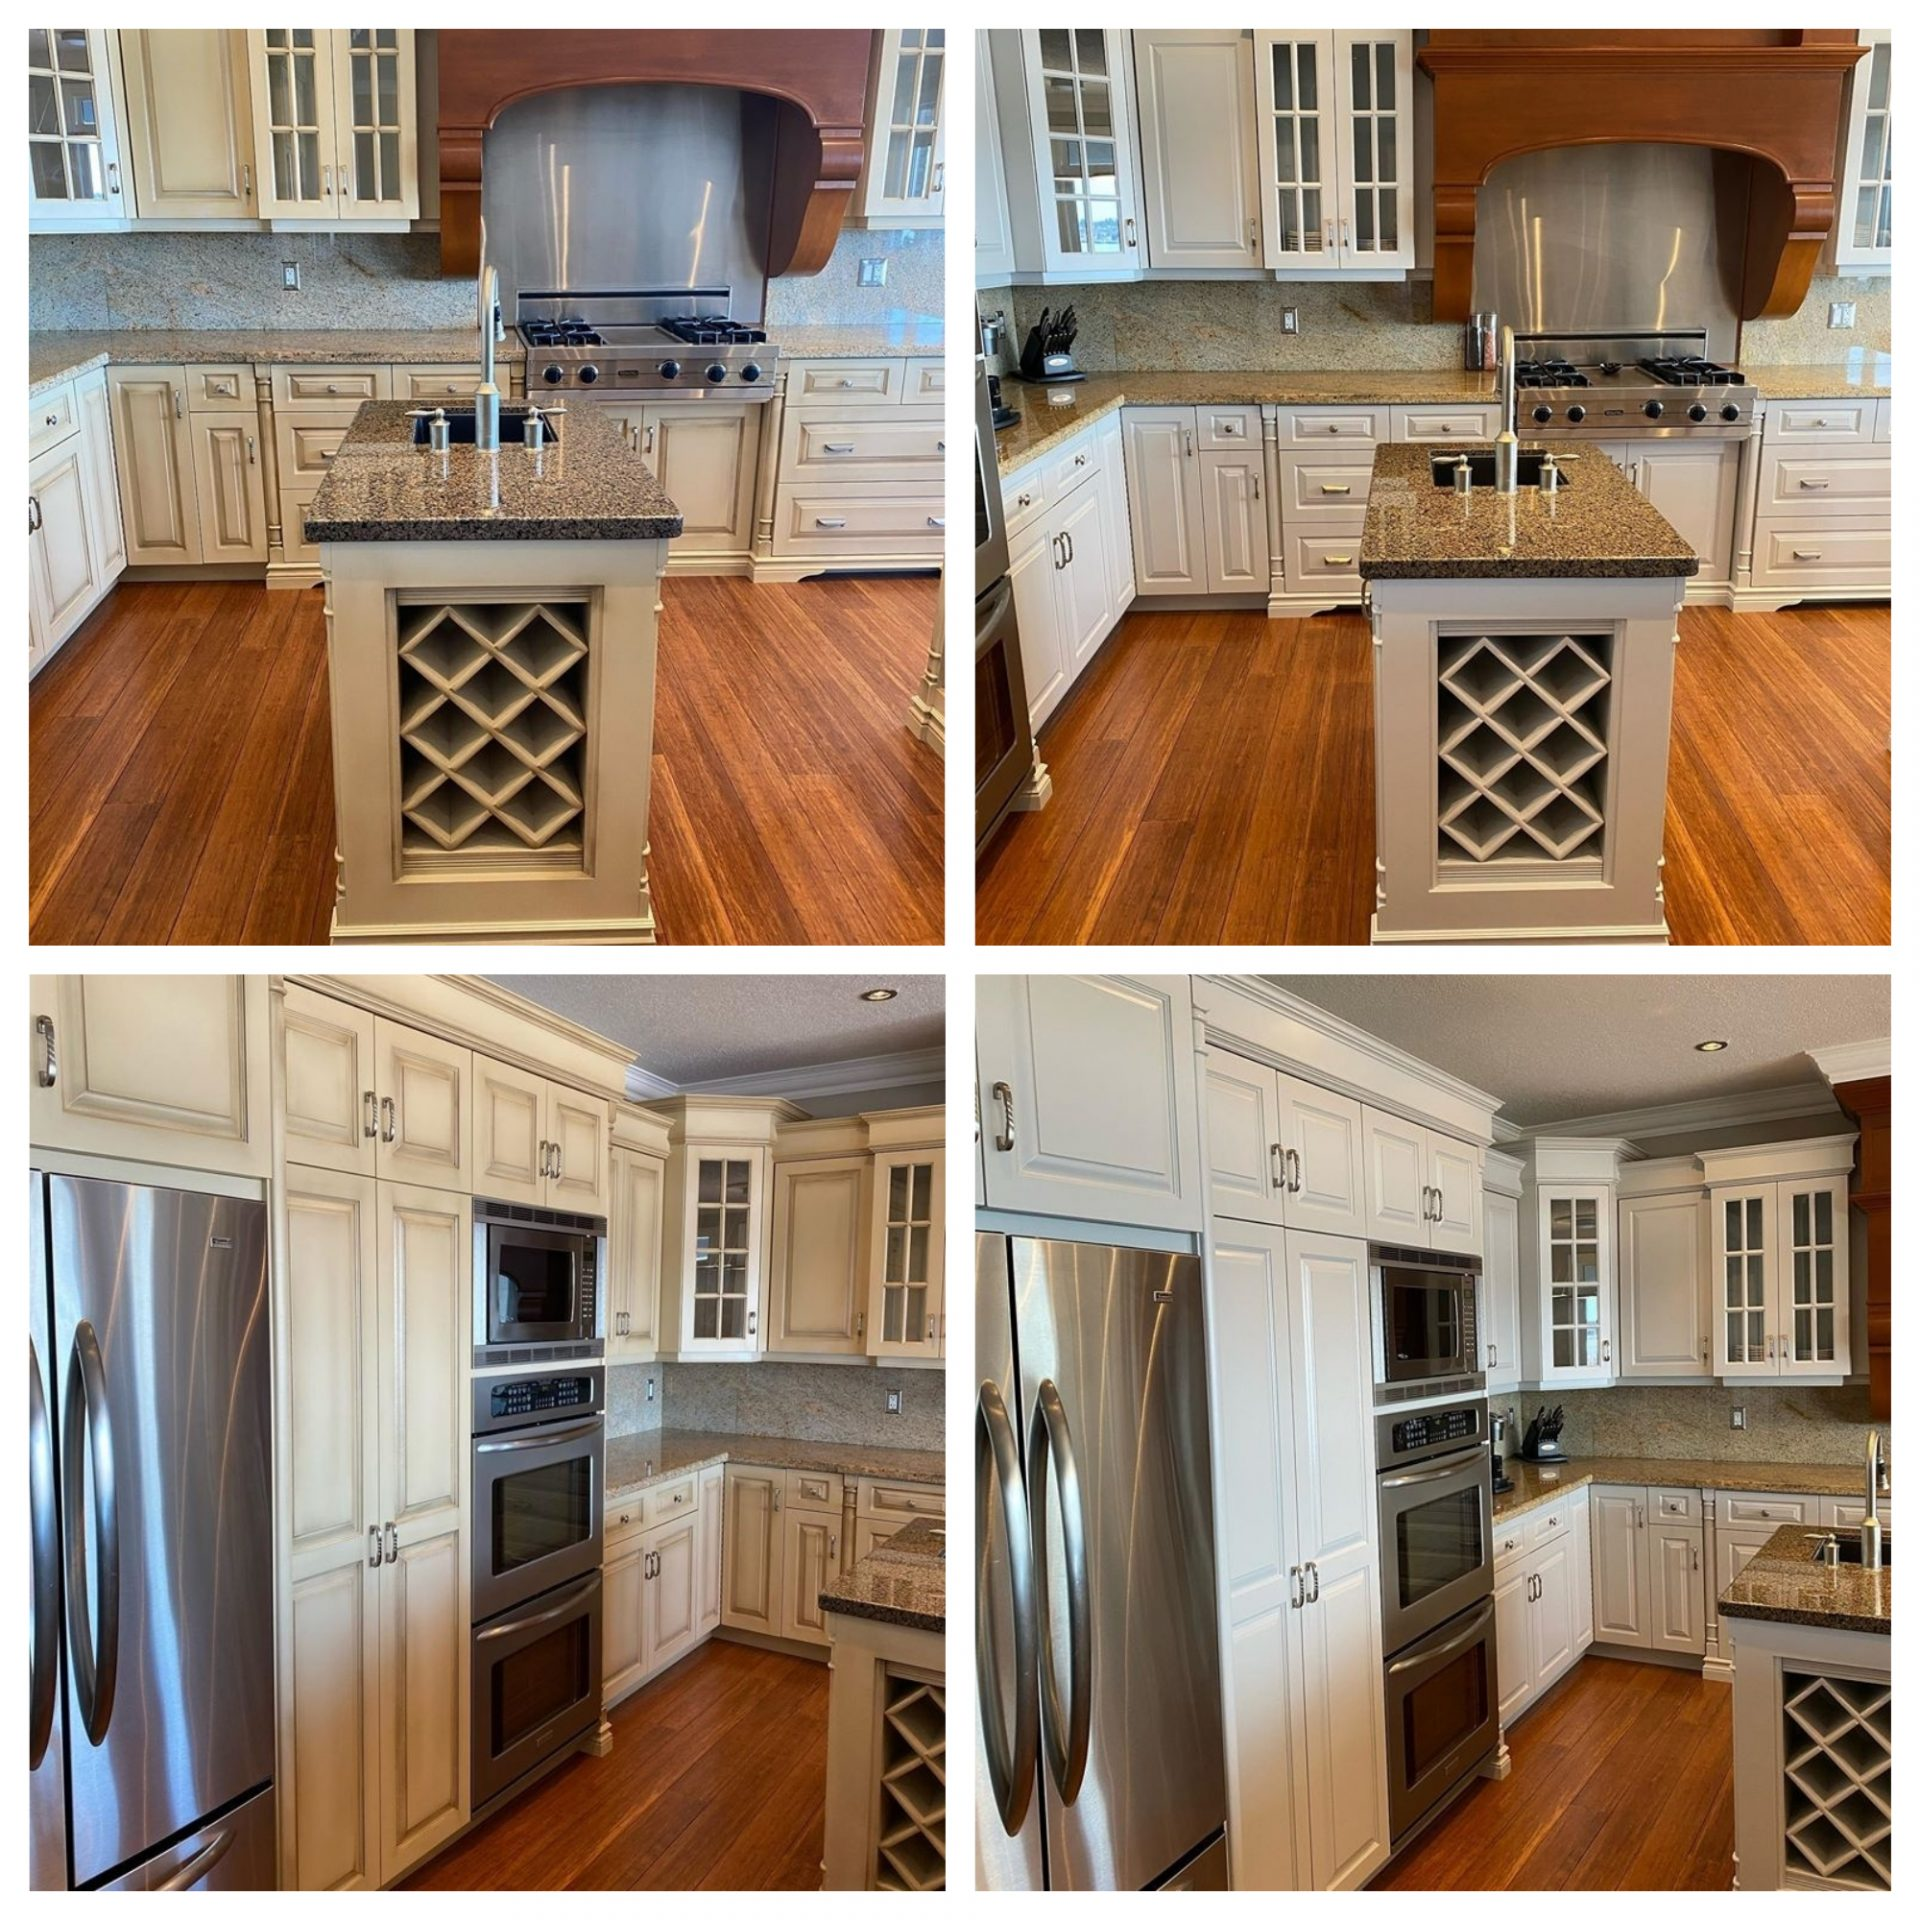 Refinishing And Painting Kitchen Cabinets Before And After Pictures